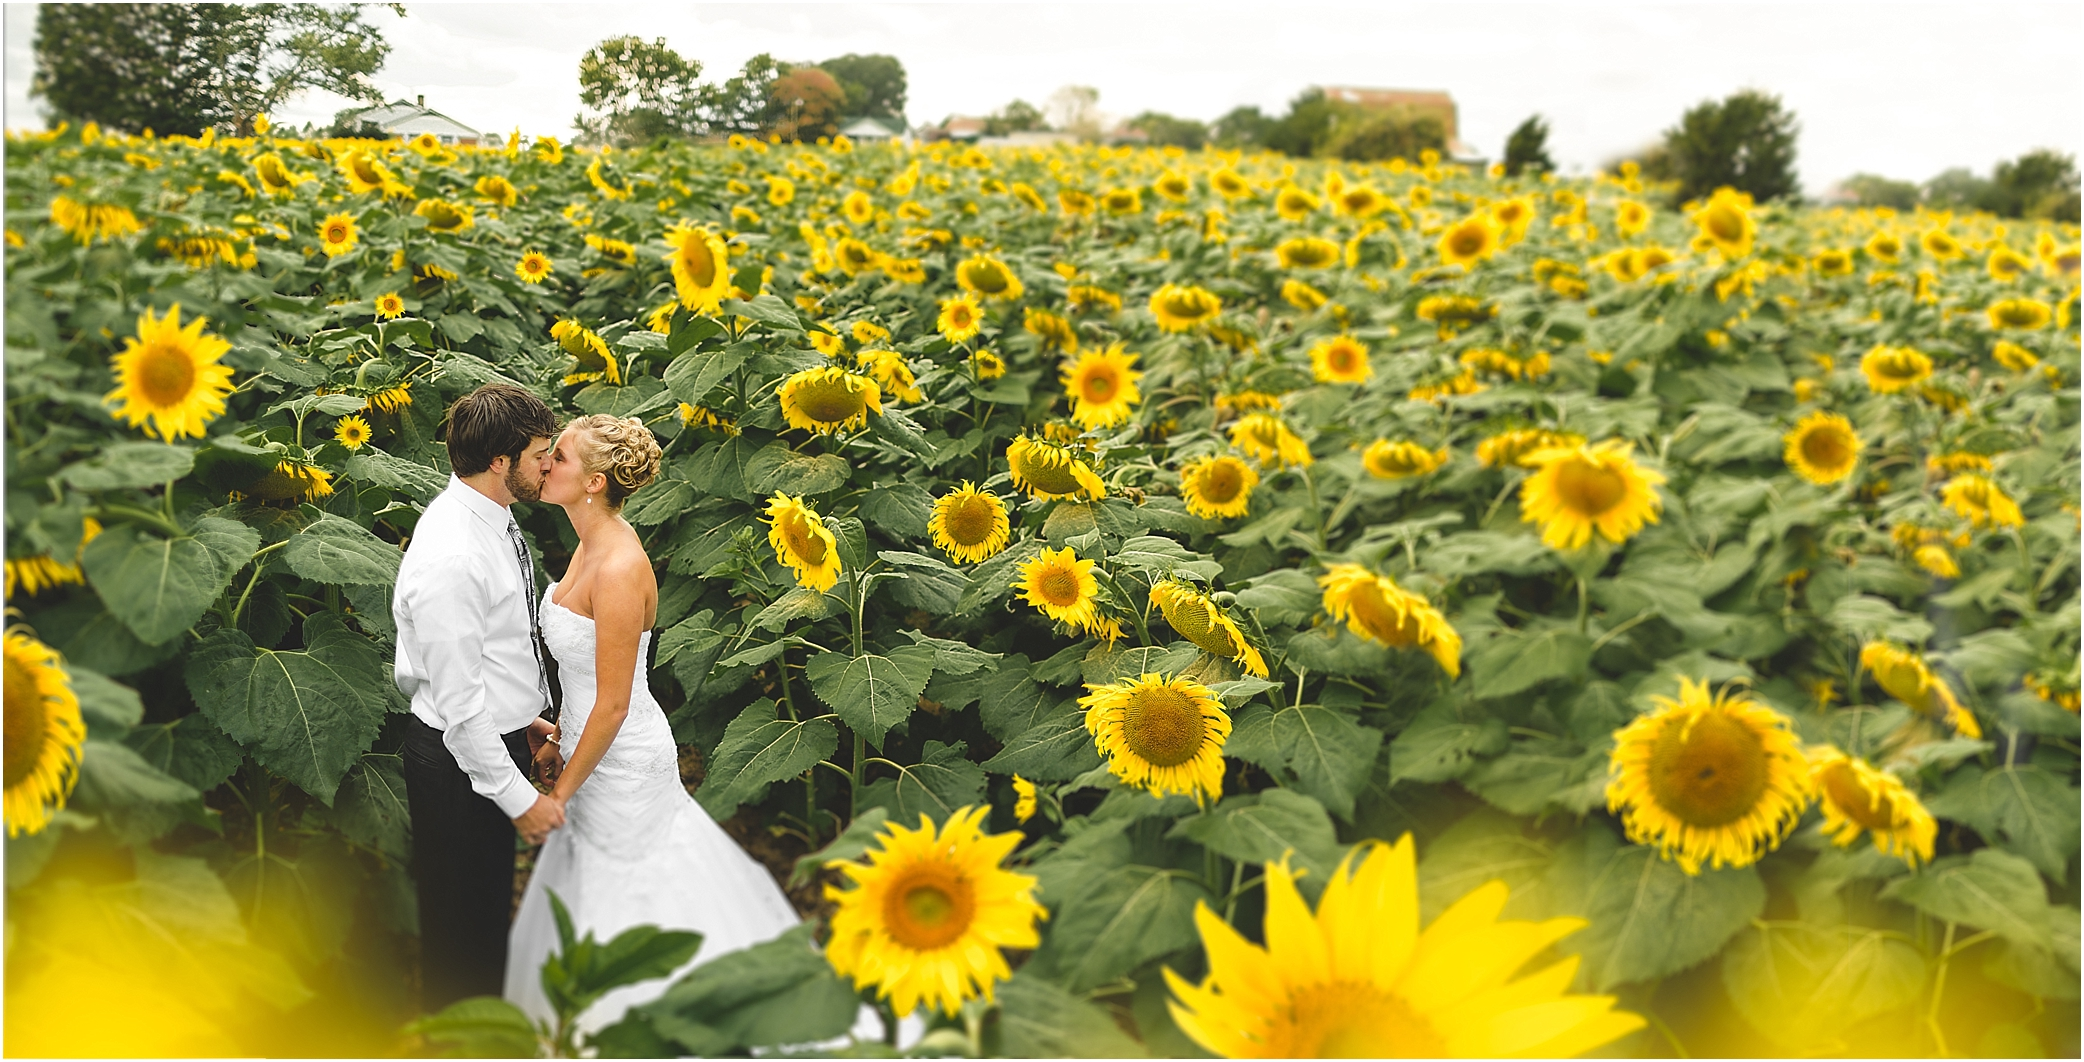 sunflower field wedding photos in dandridge tn by jophoto